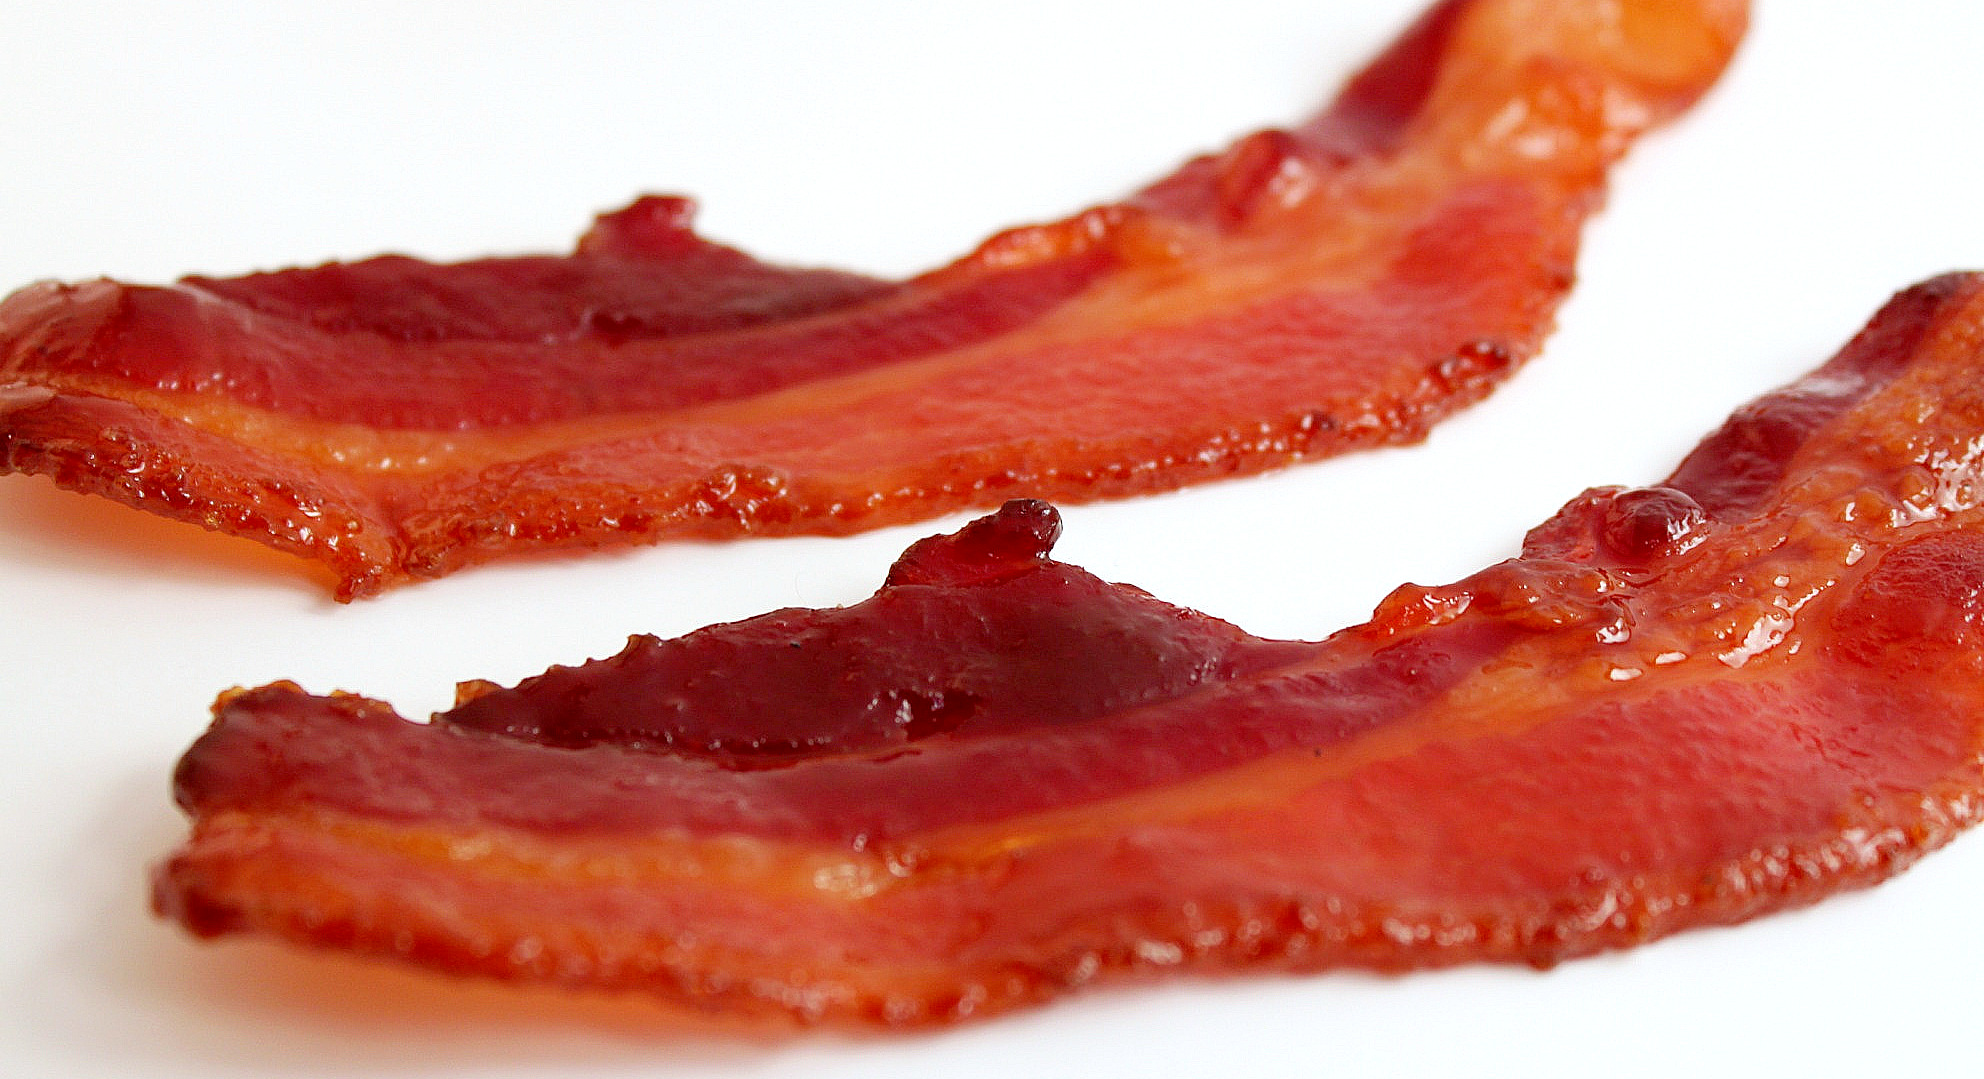 The Baconomics of Branding (or, How to Bring Home More by Being Different)